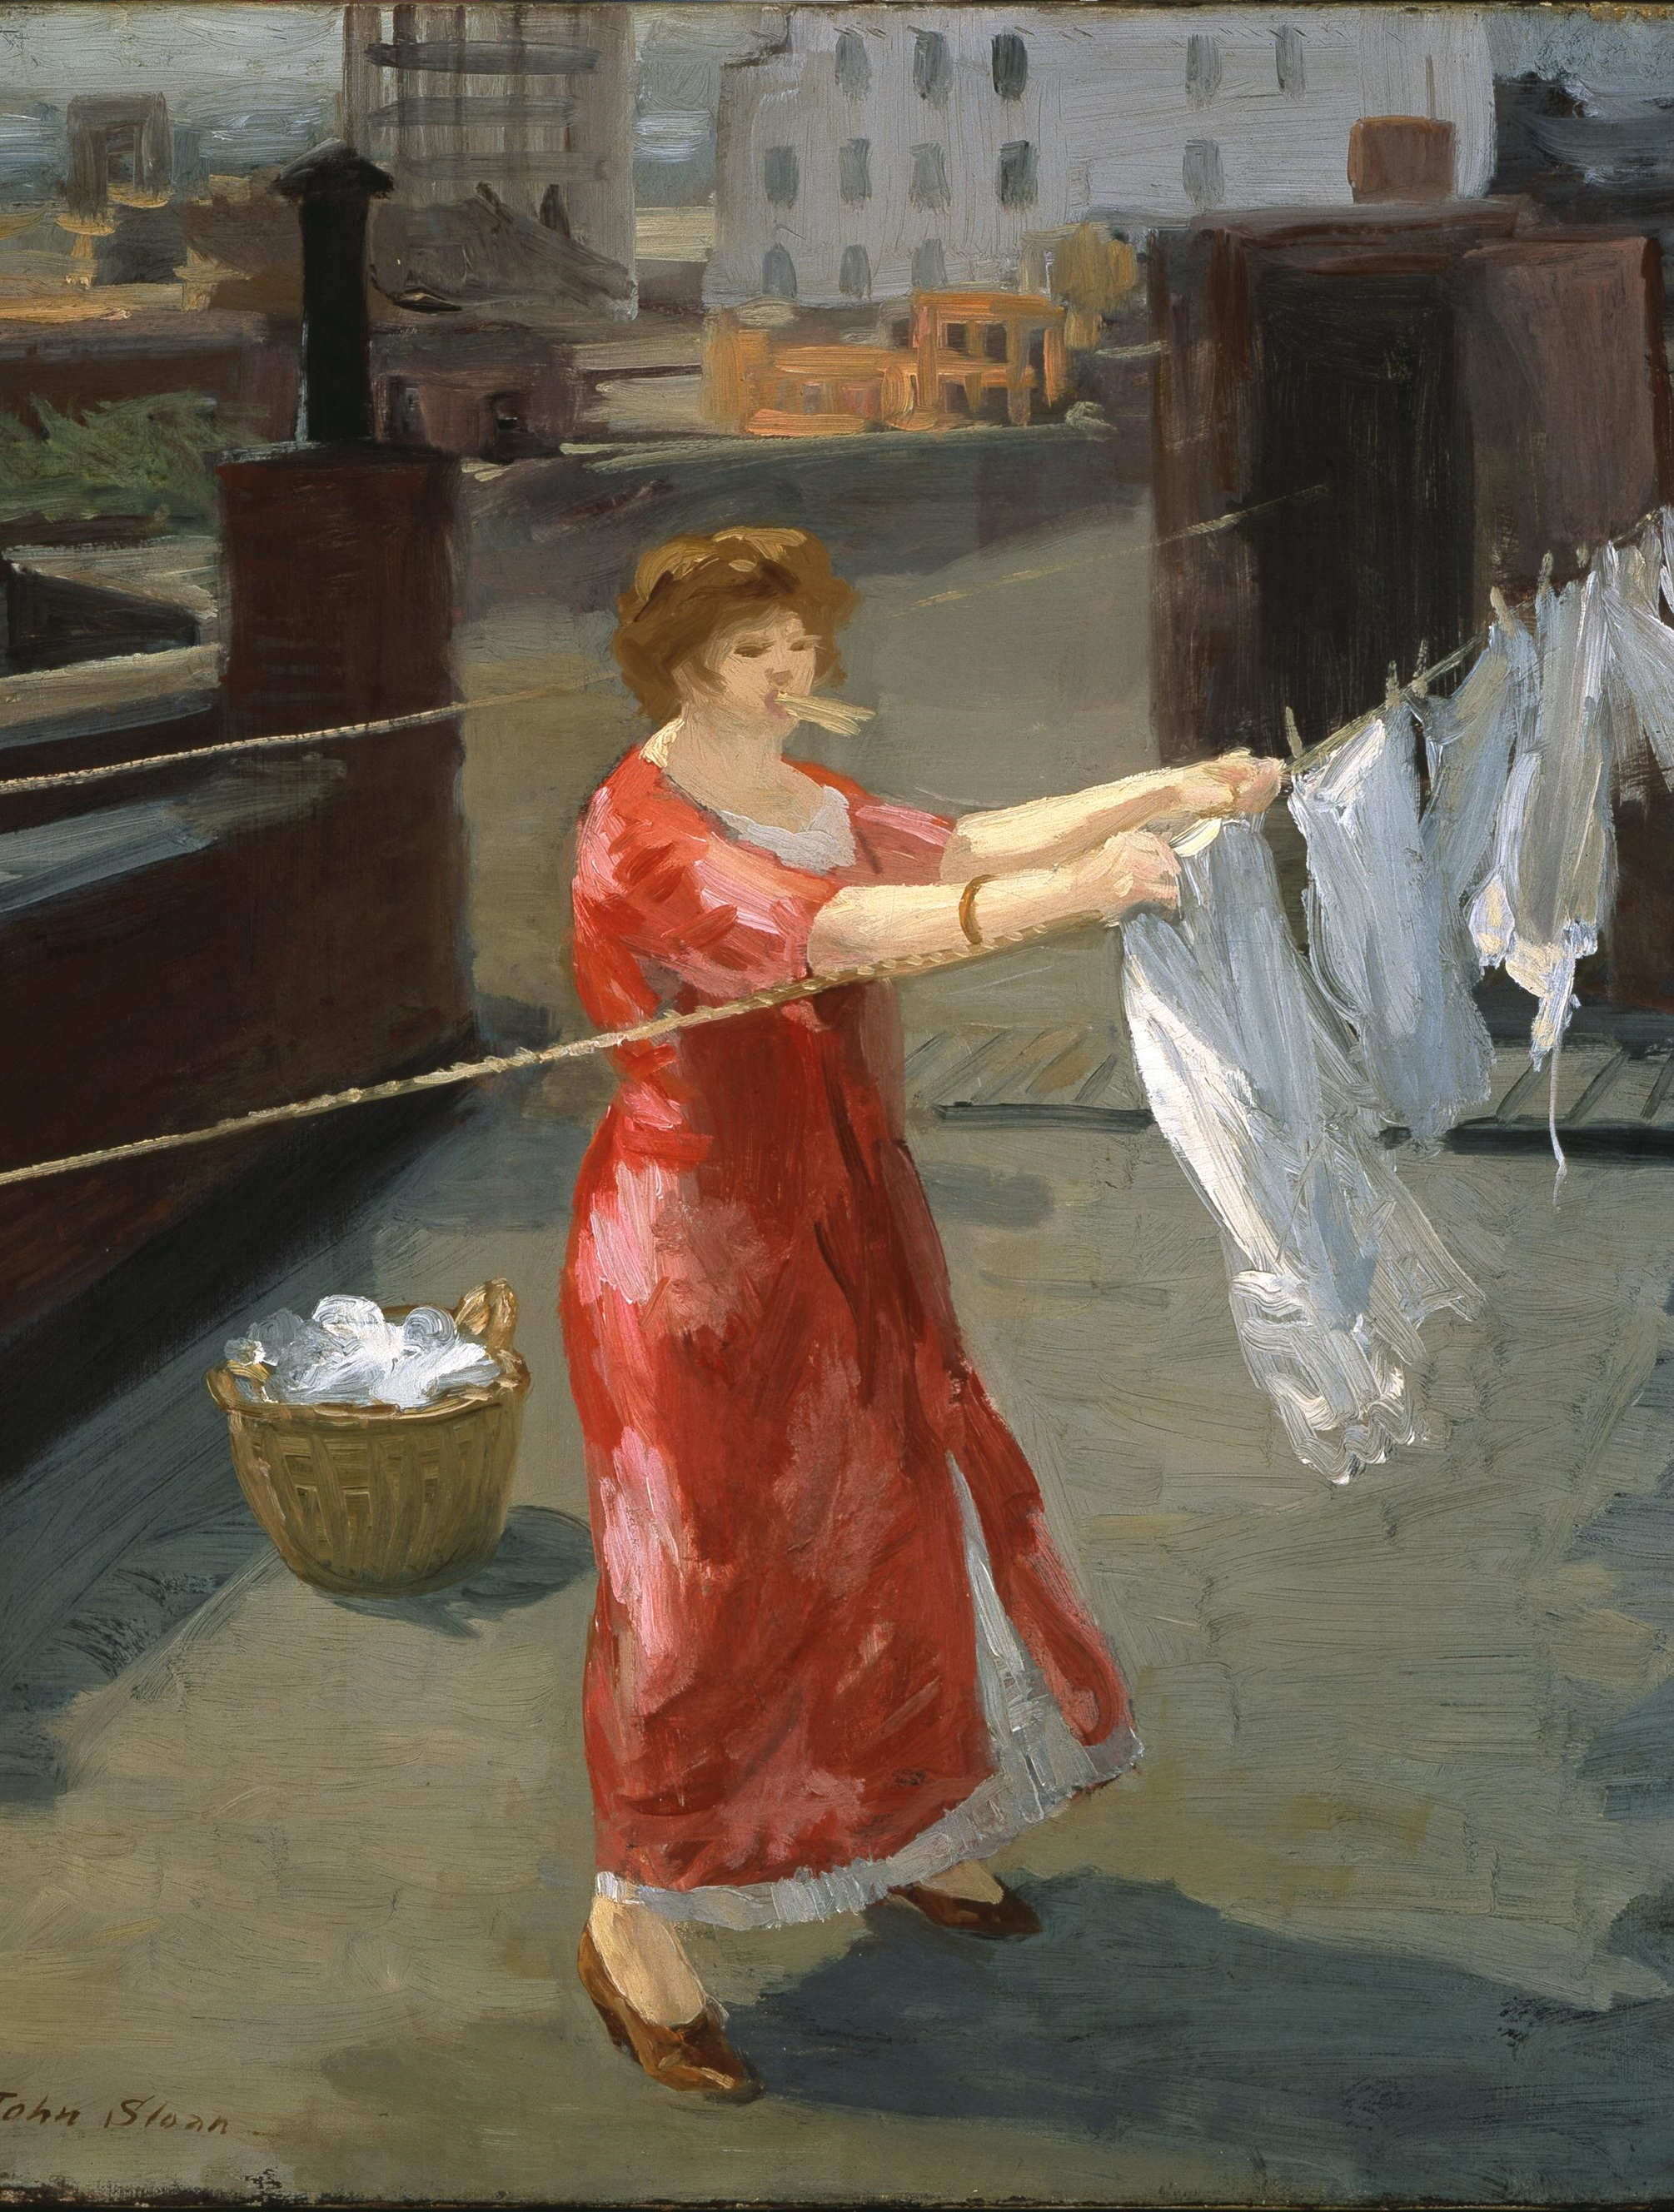 Sloan 1912 - Red Kimono on the Roof - Quelle: WikiCommons, Detail siehe Ende des Artikels